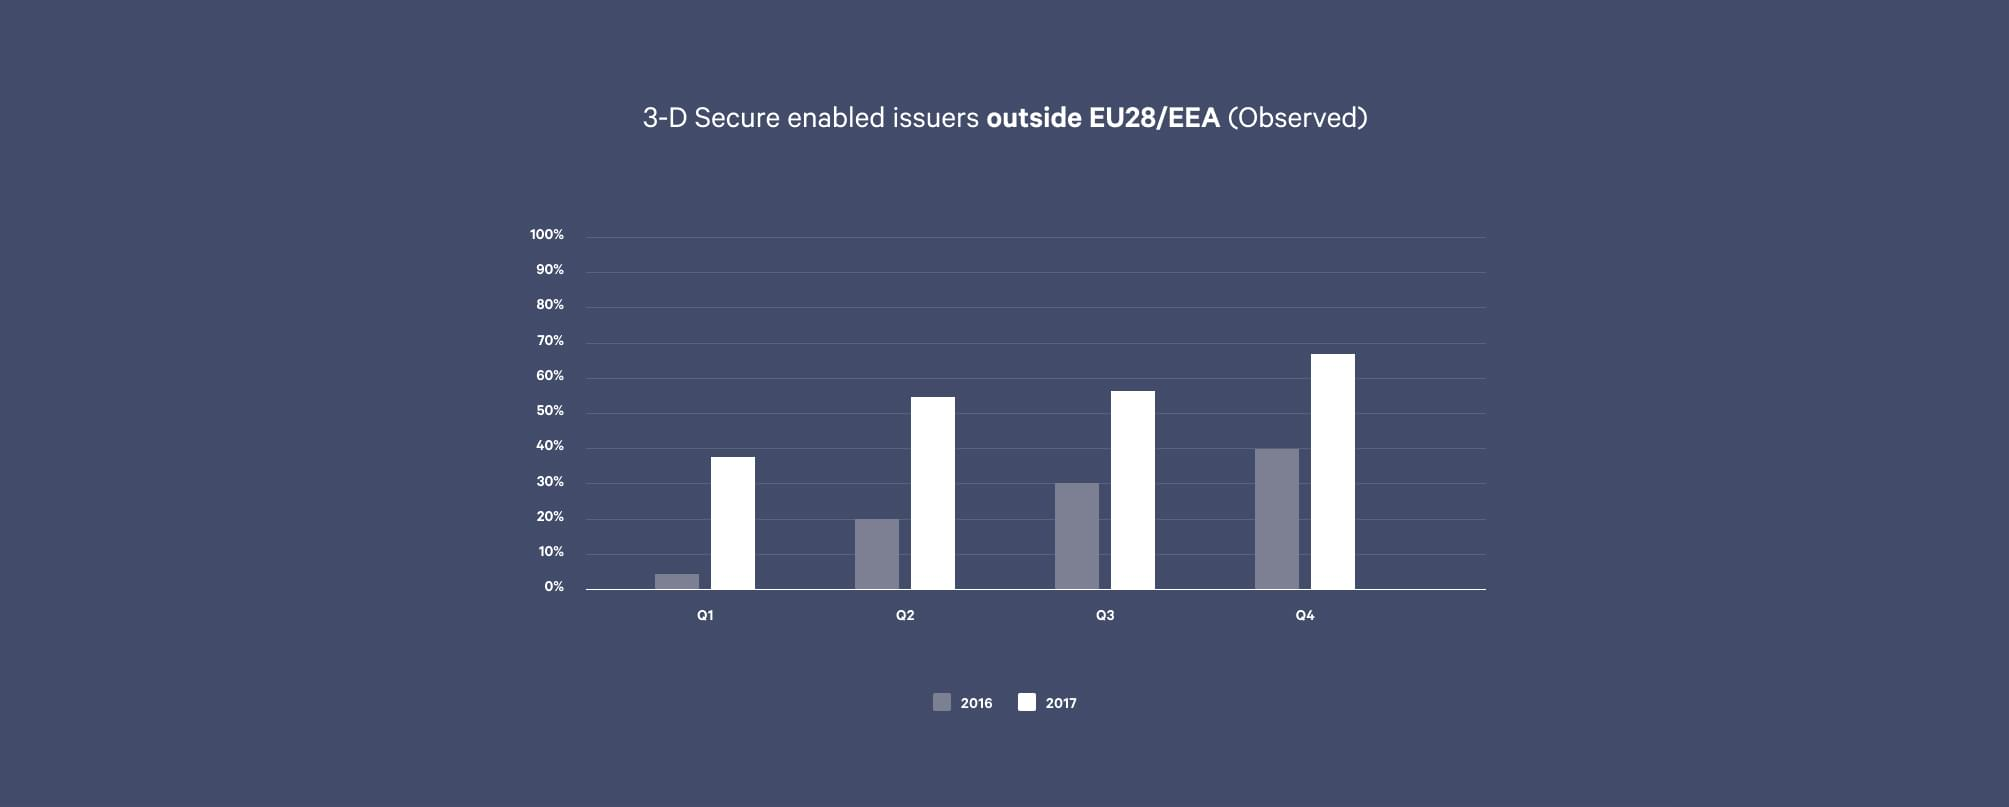 share of banks outside of the EU supporting 3-D Secure